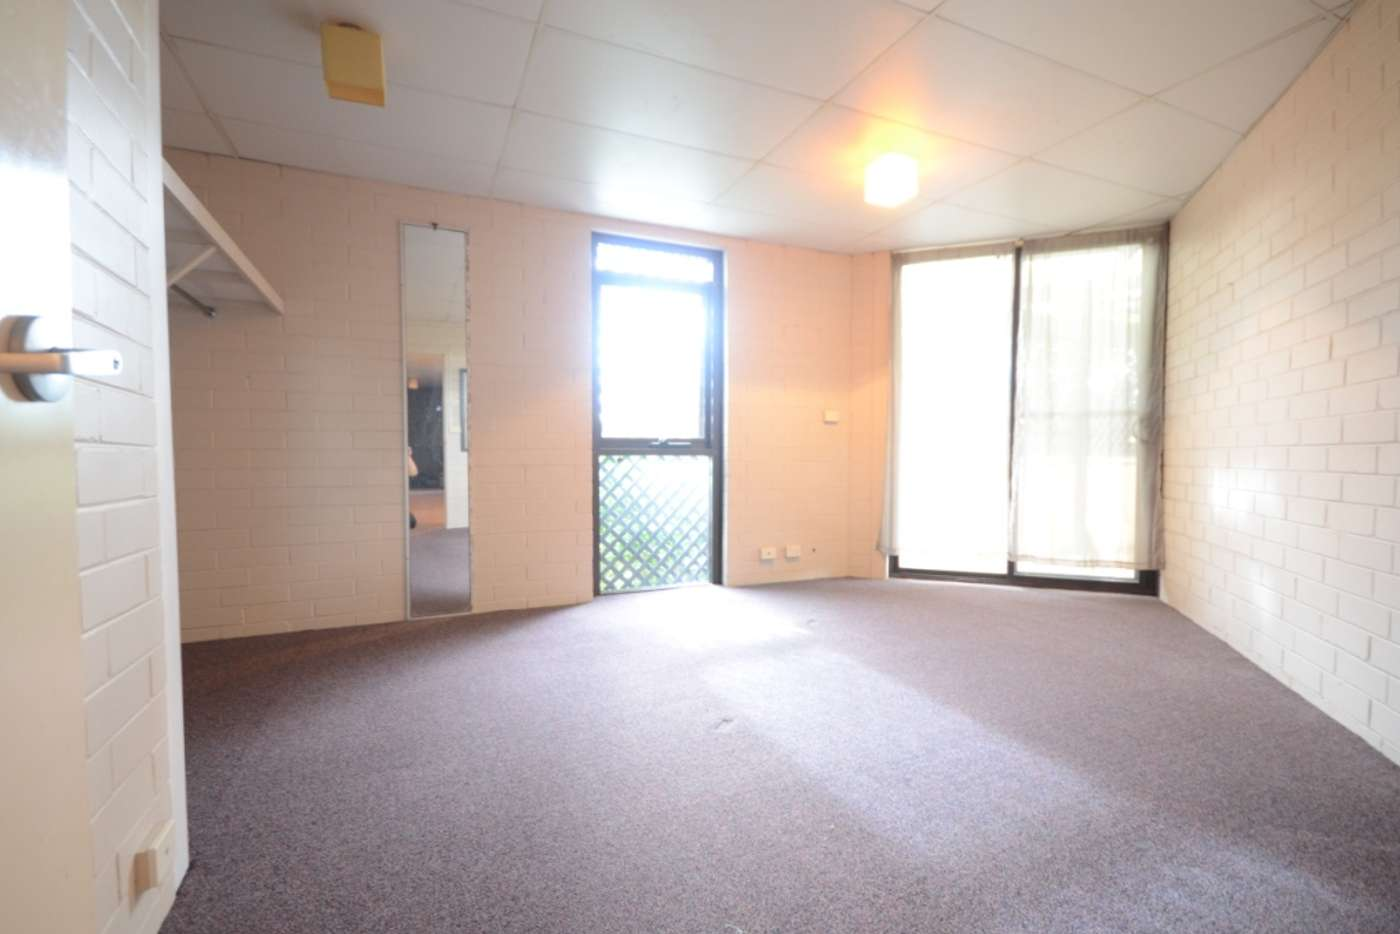 Sixth view of Homely unit listing, 21A Tucks Road, Toongabbie NSW 2146